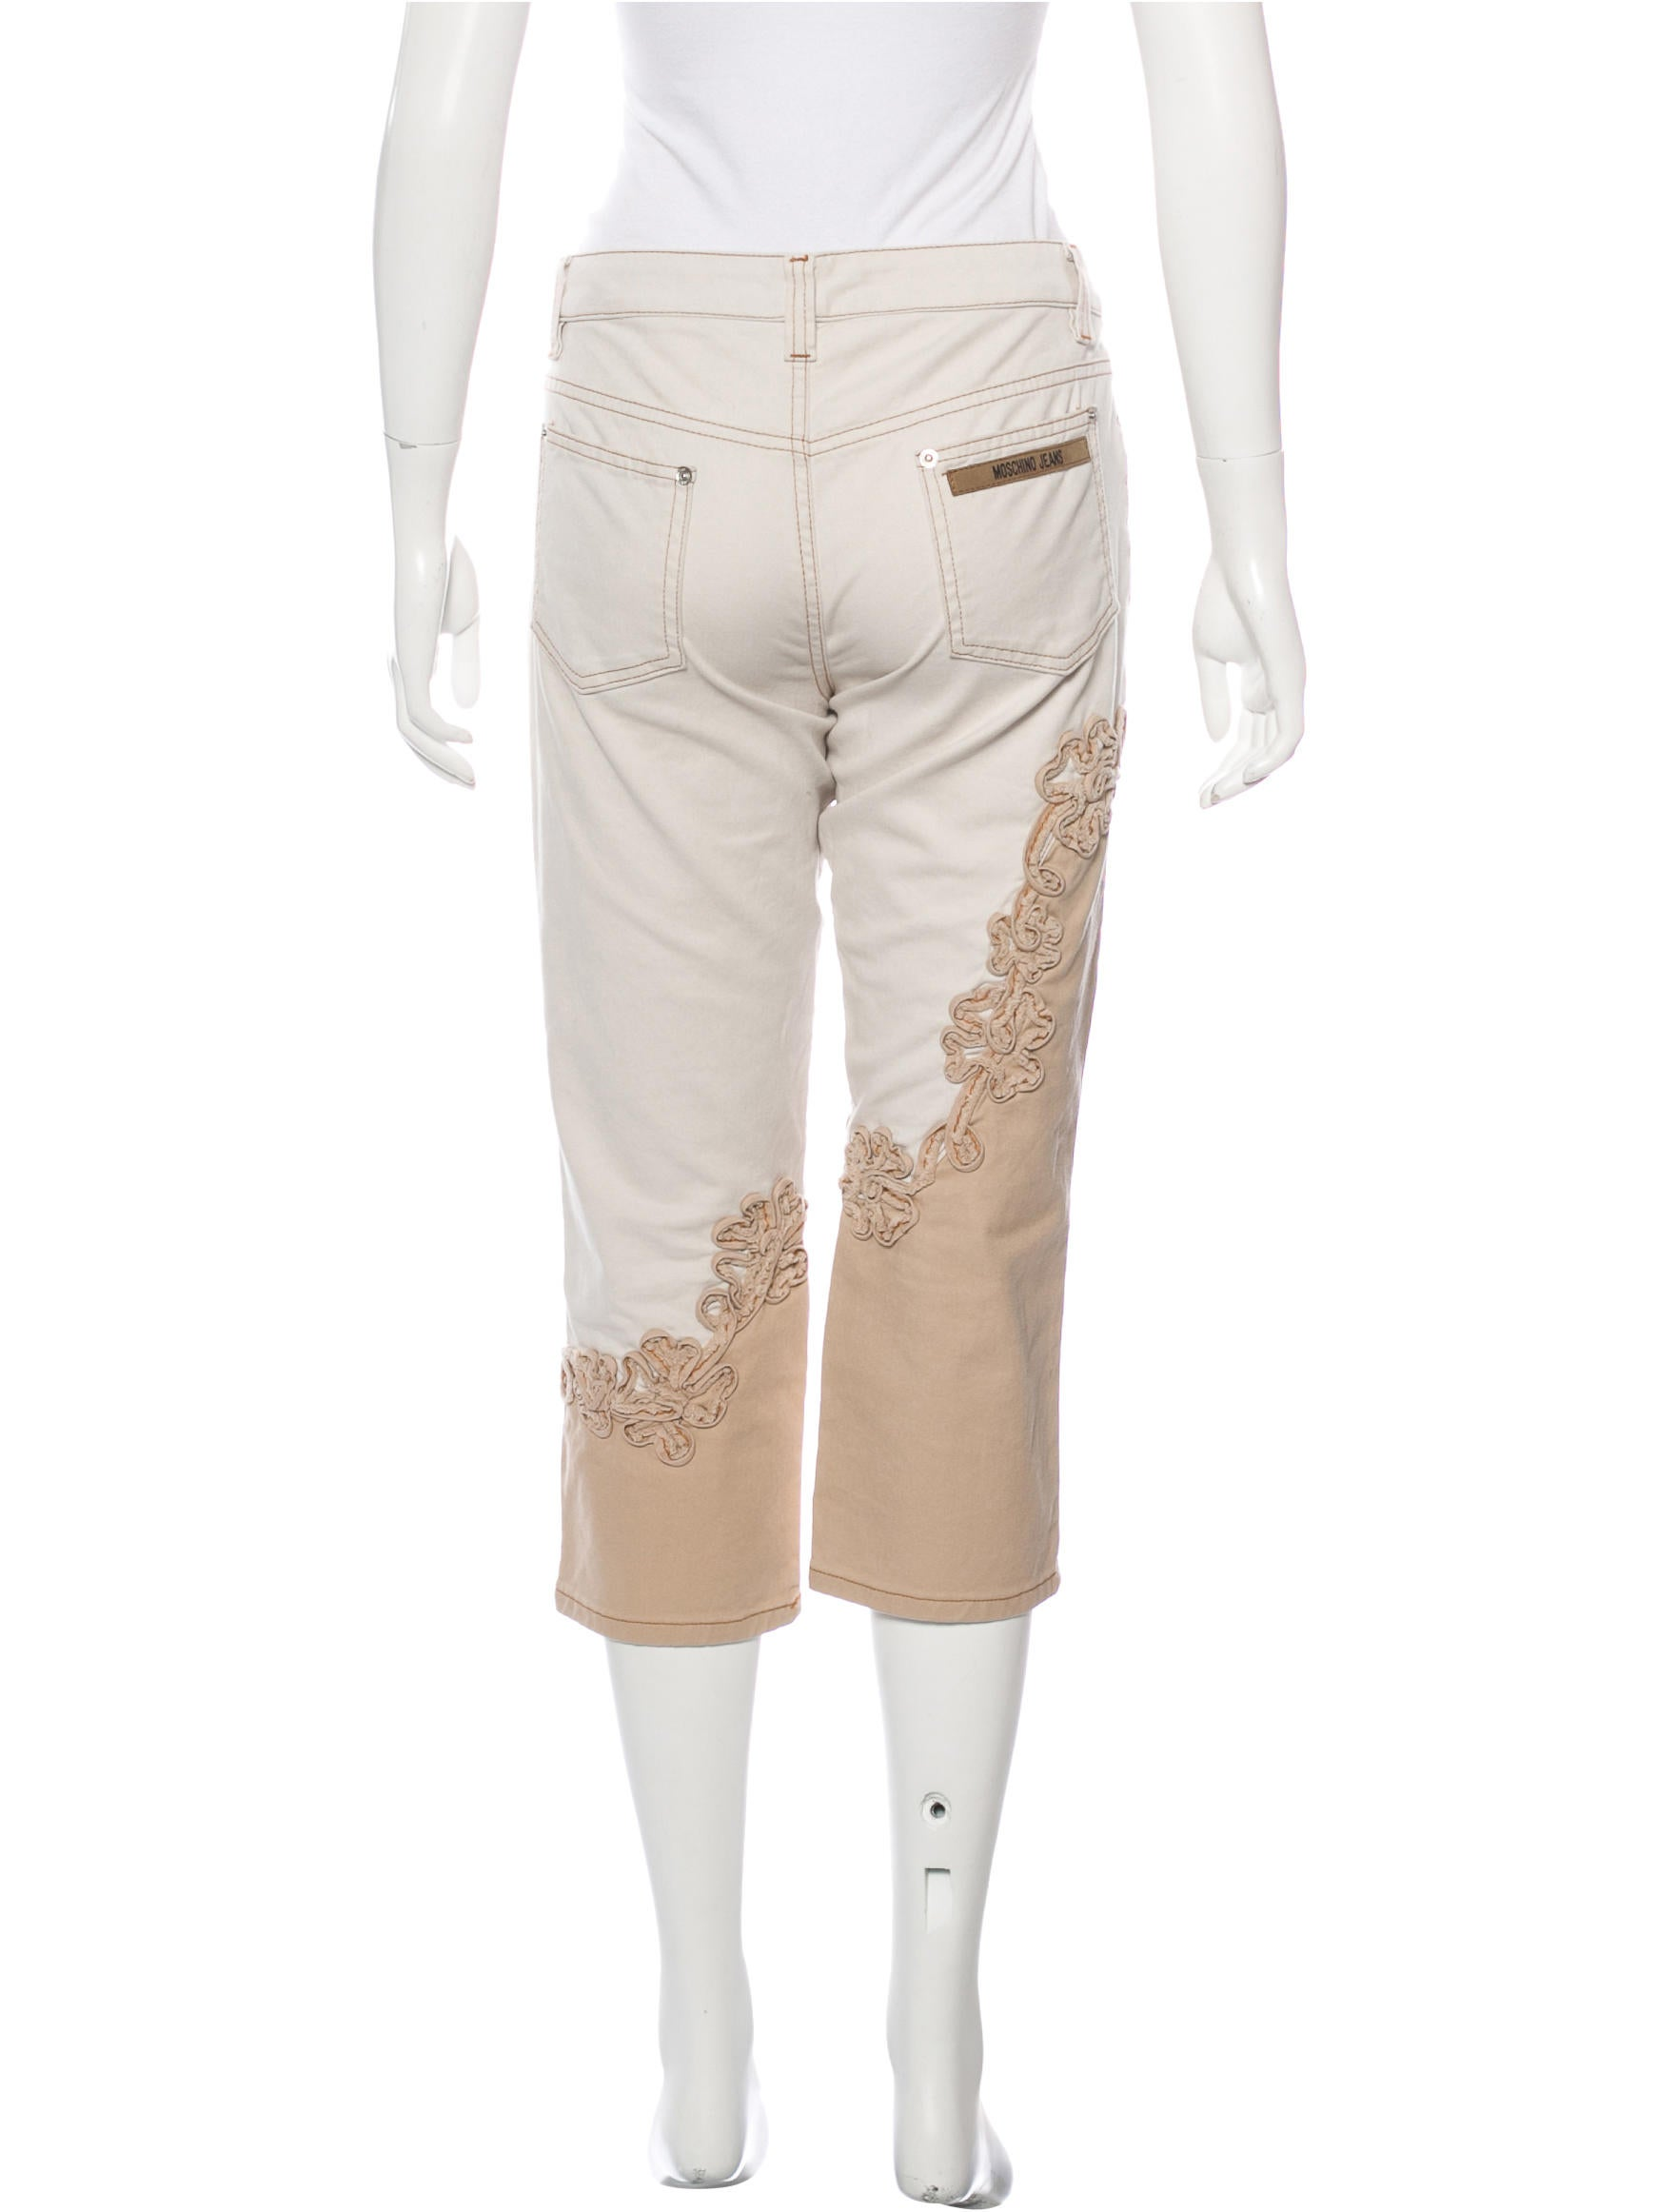 Moschino jeans embroidered cropped clothing